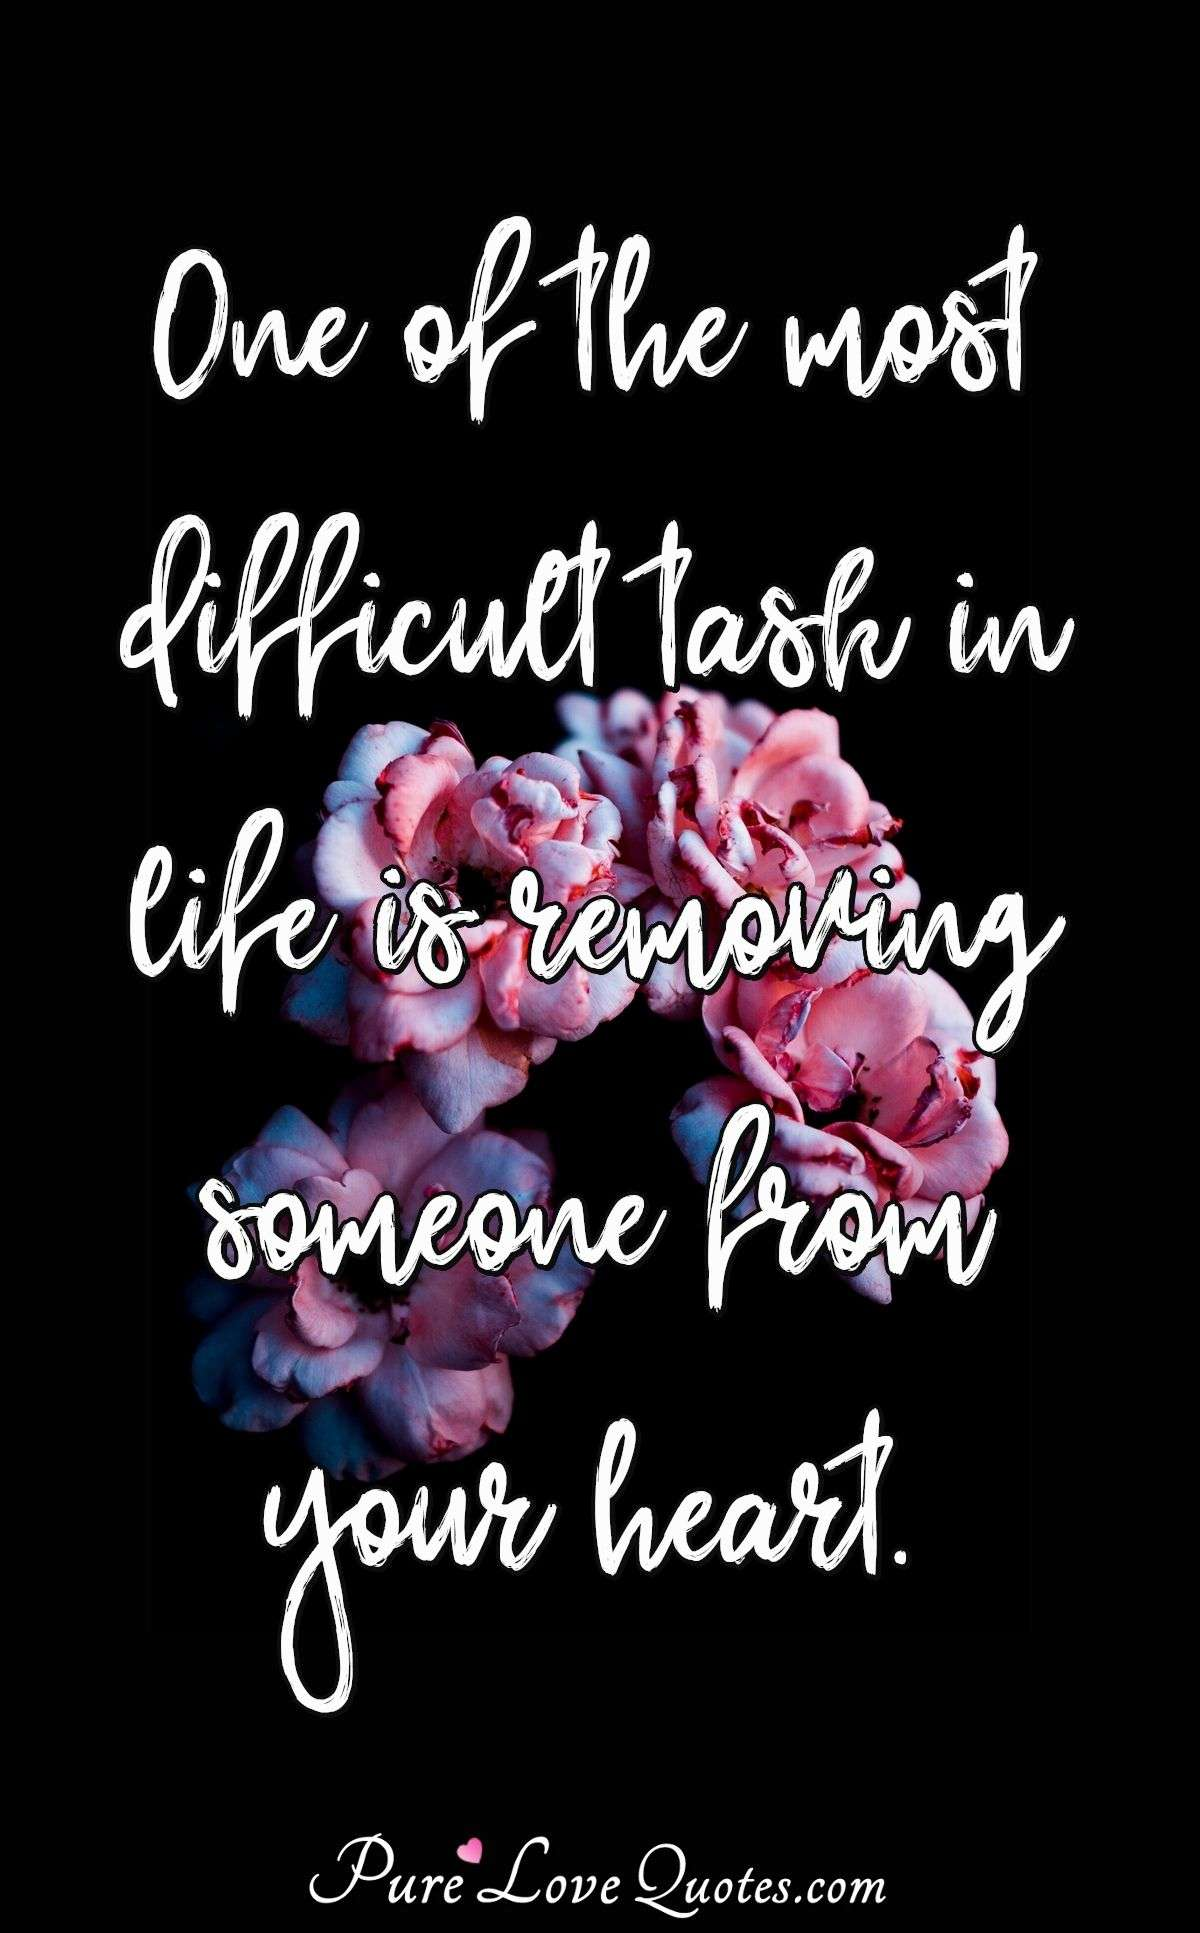 One of the most difficult task in life is removing someone from your heart. - Anonymous